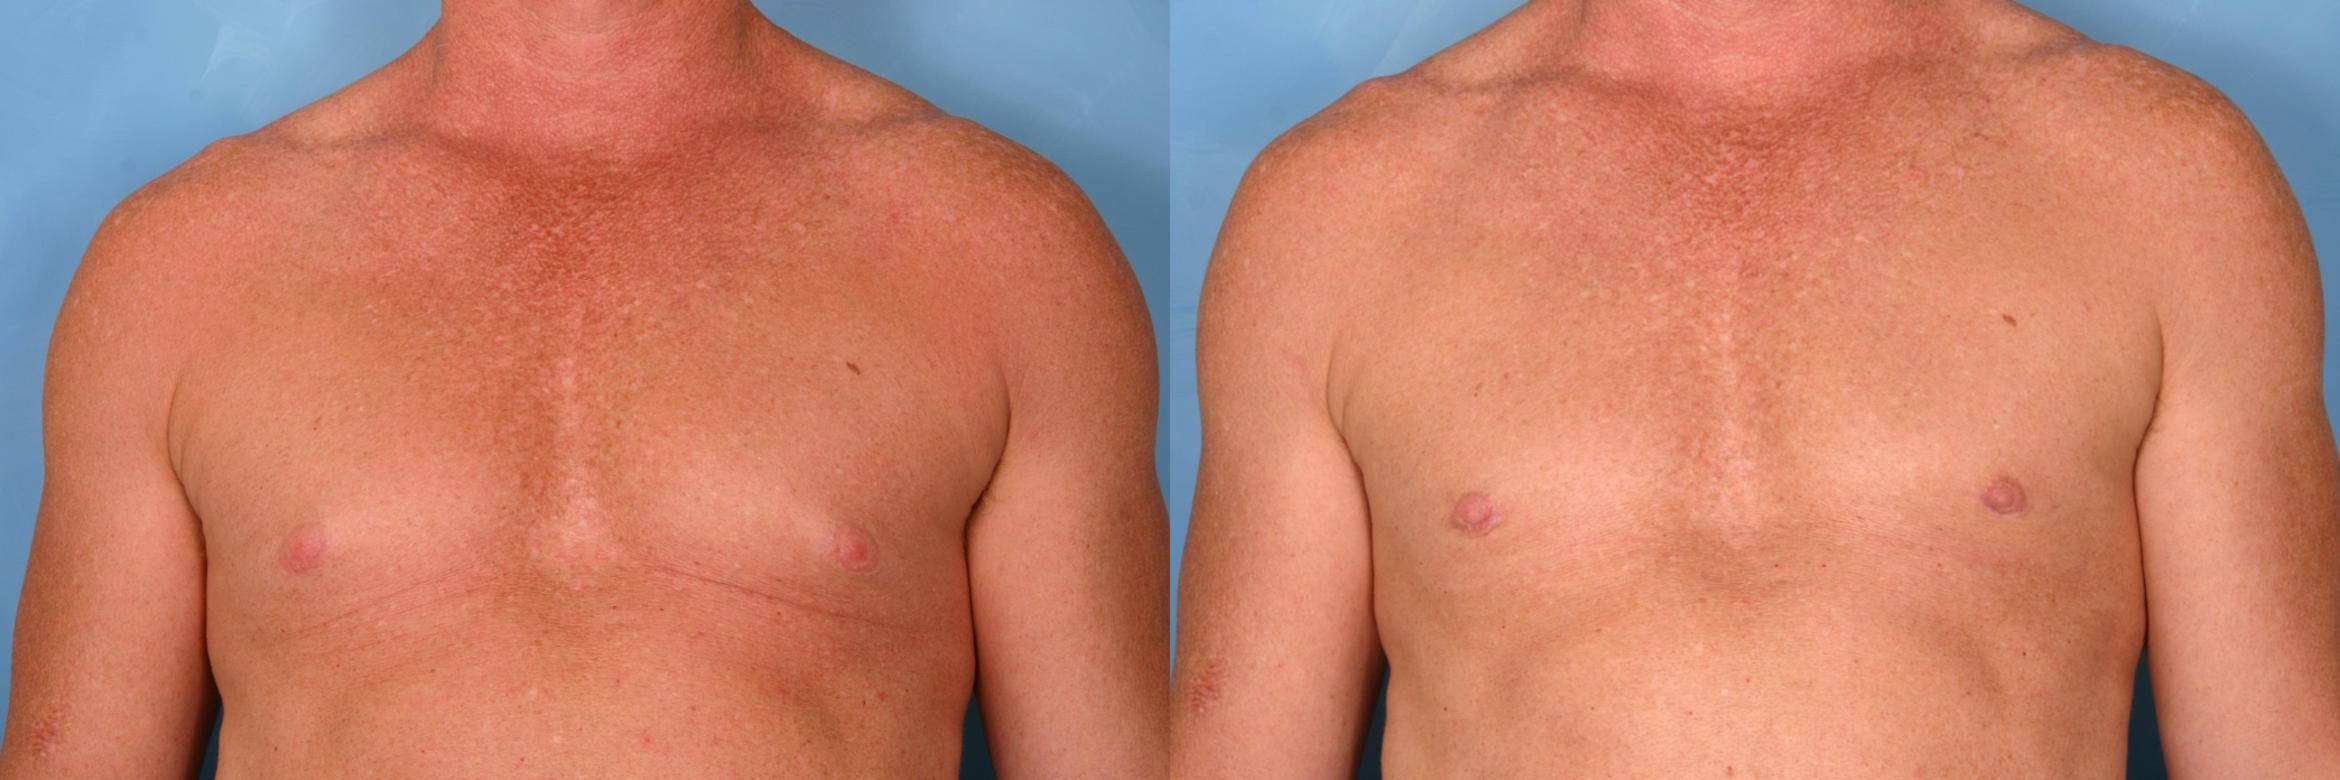 Male Breast Reduction Case 77 Before & After View #1 | Naples, FL | Kent V. Hasen, M.D.